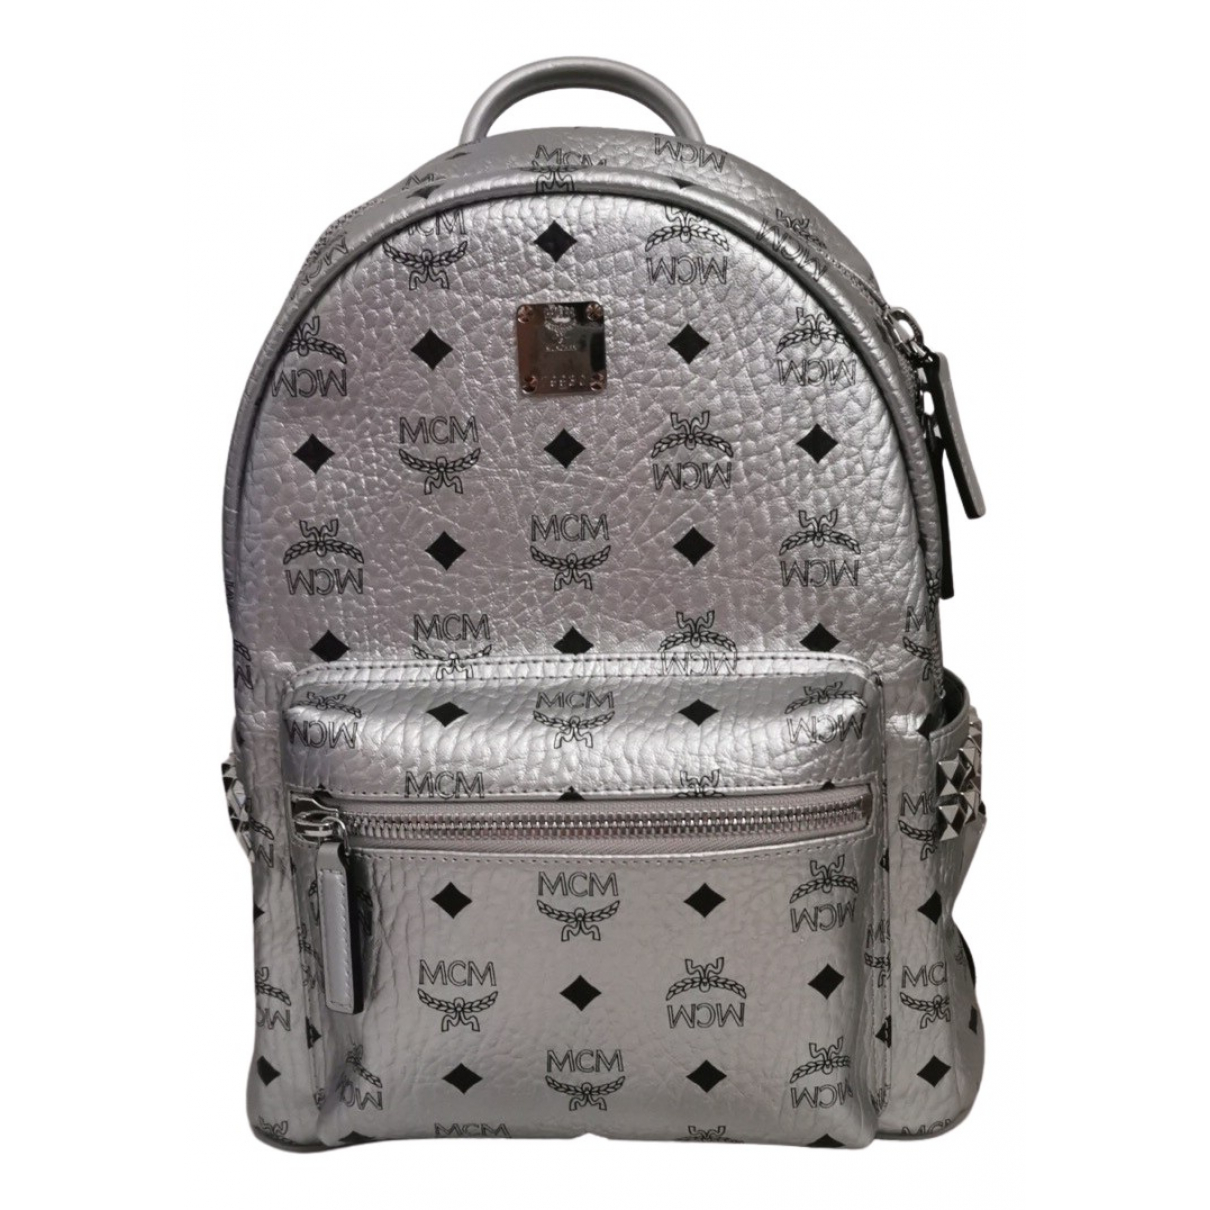 Mcm \N Silver Leather backpack for Women \N